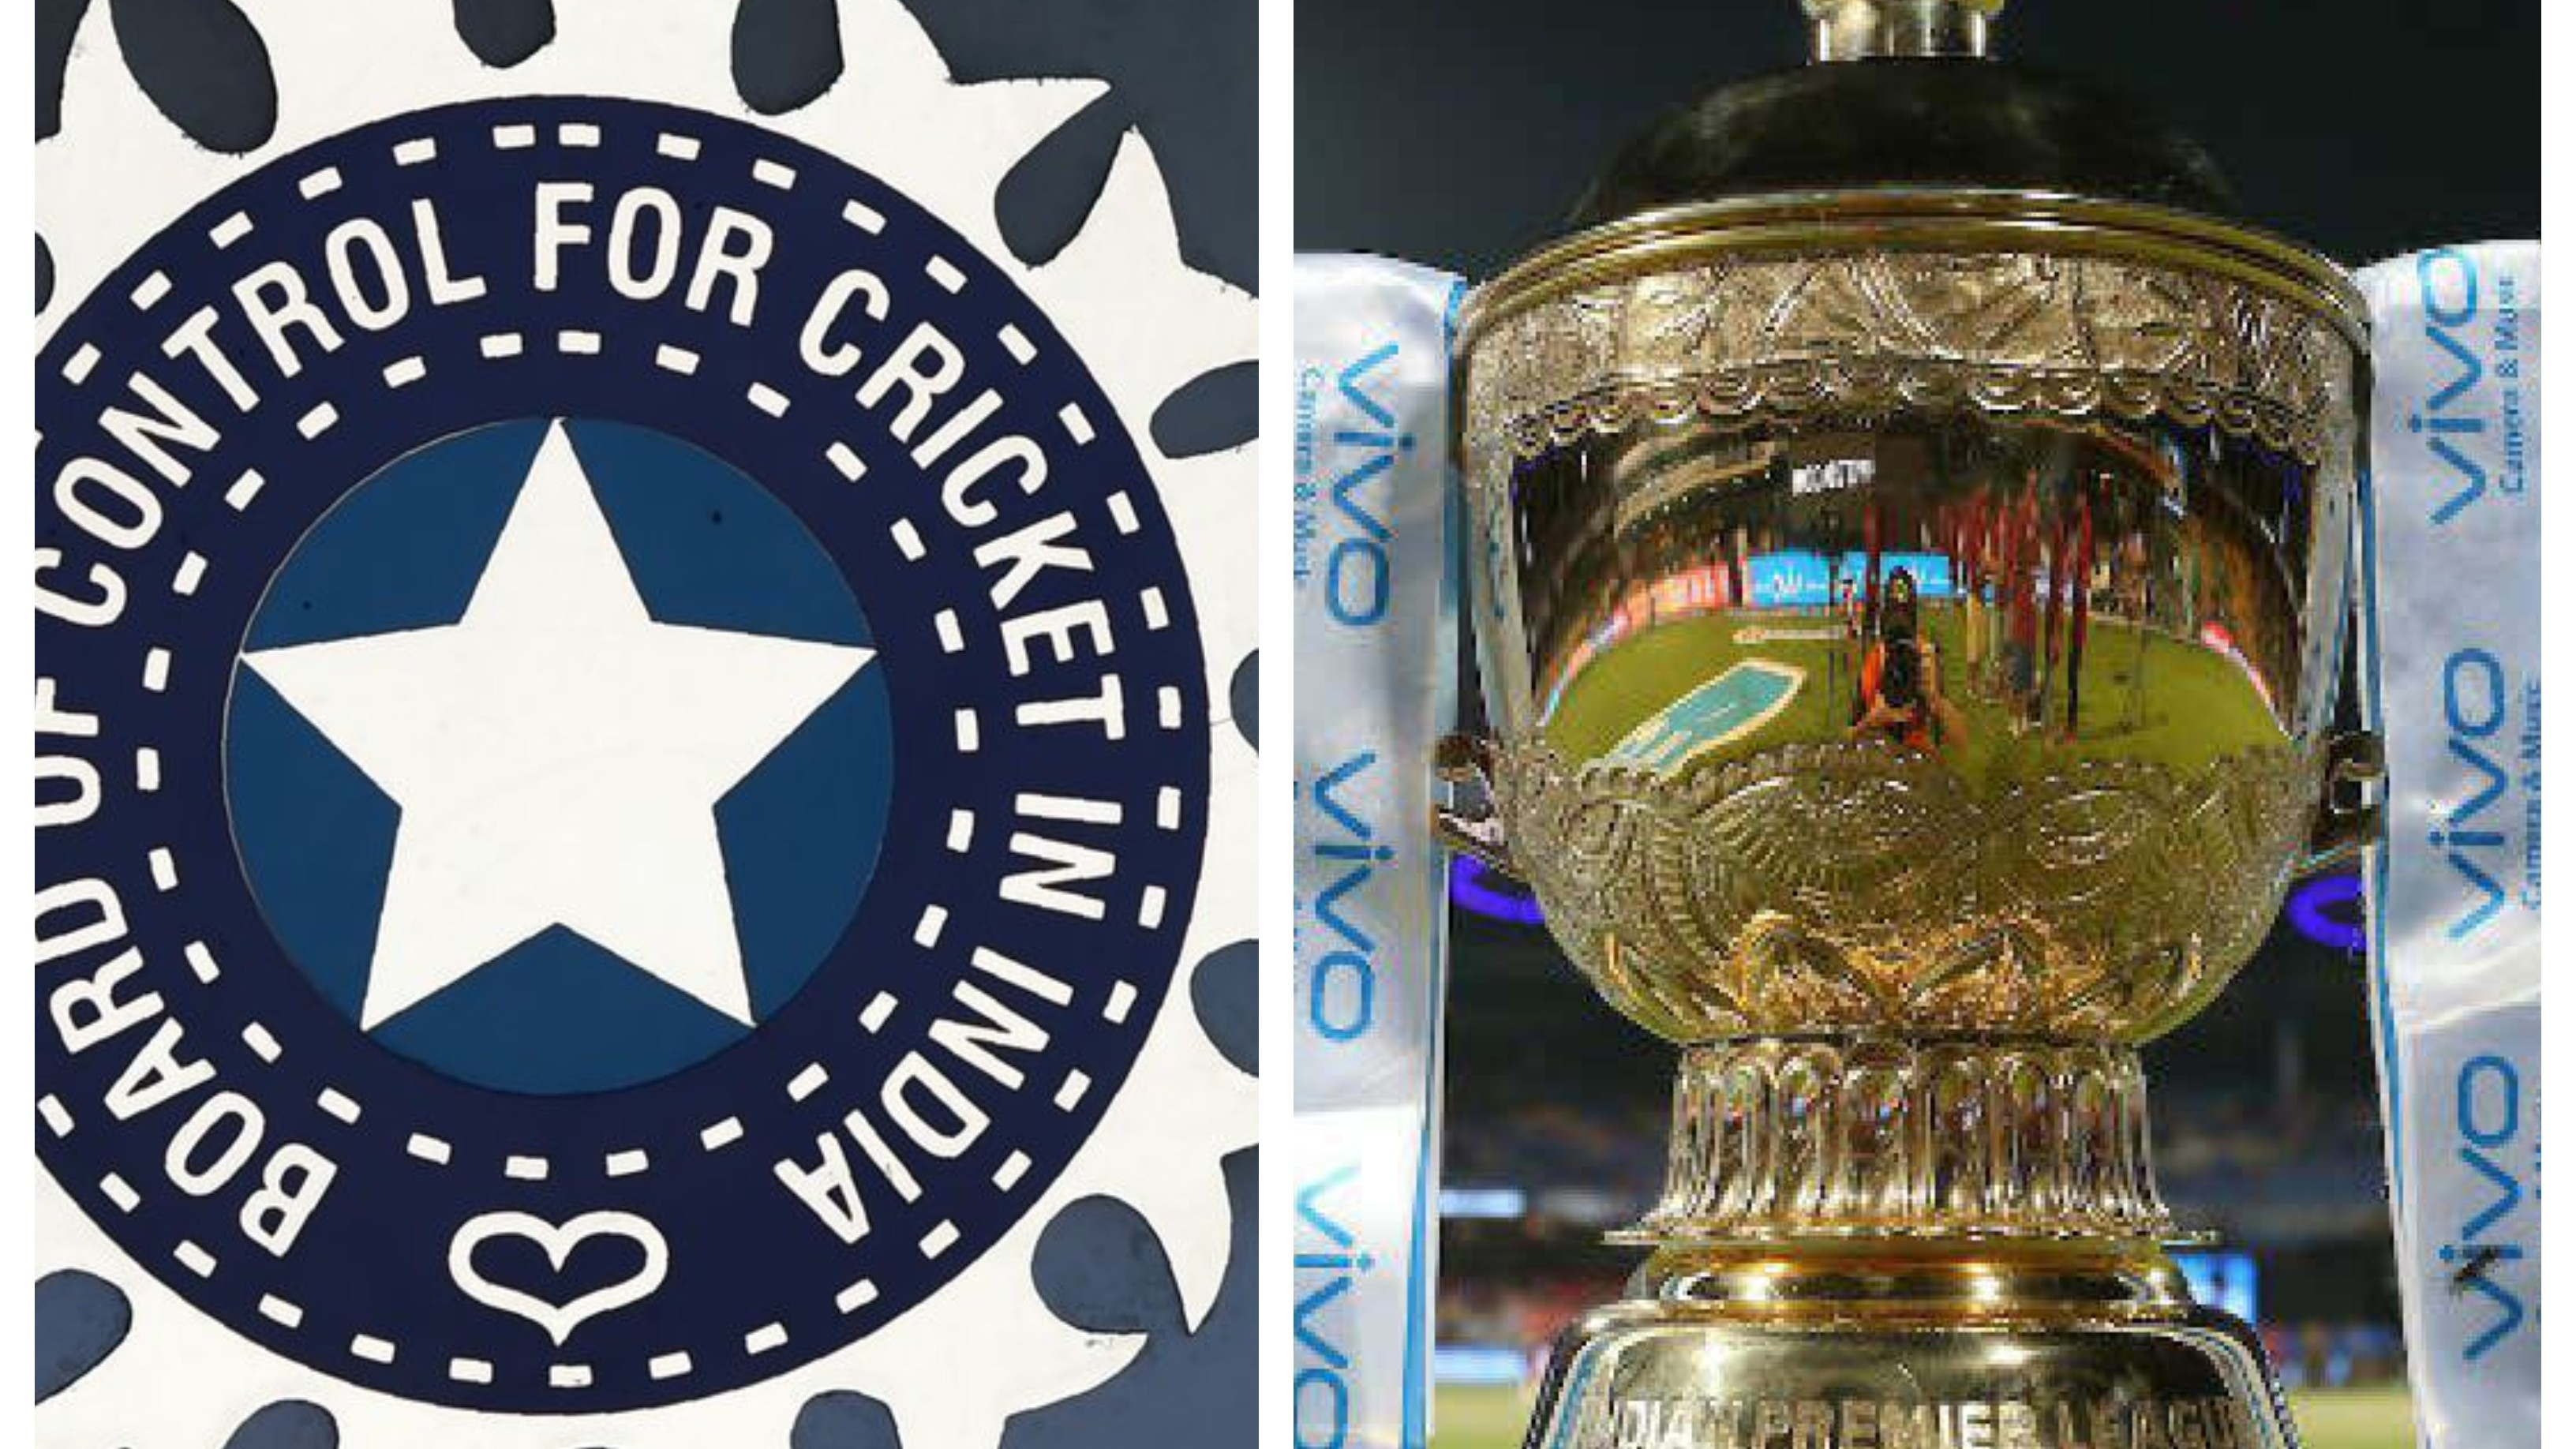 IPL 2020: BCCI official says board hoping to soon get government clearance for IPL 13 in UAE: Report